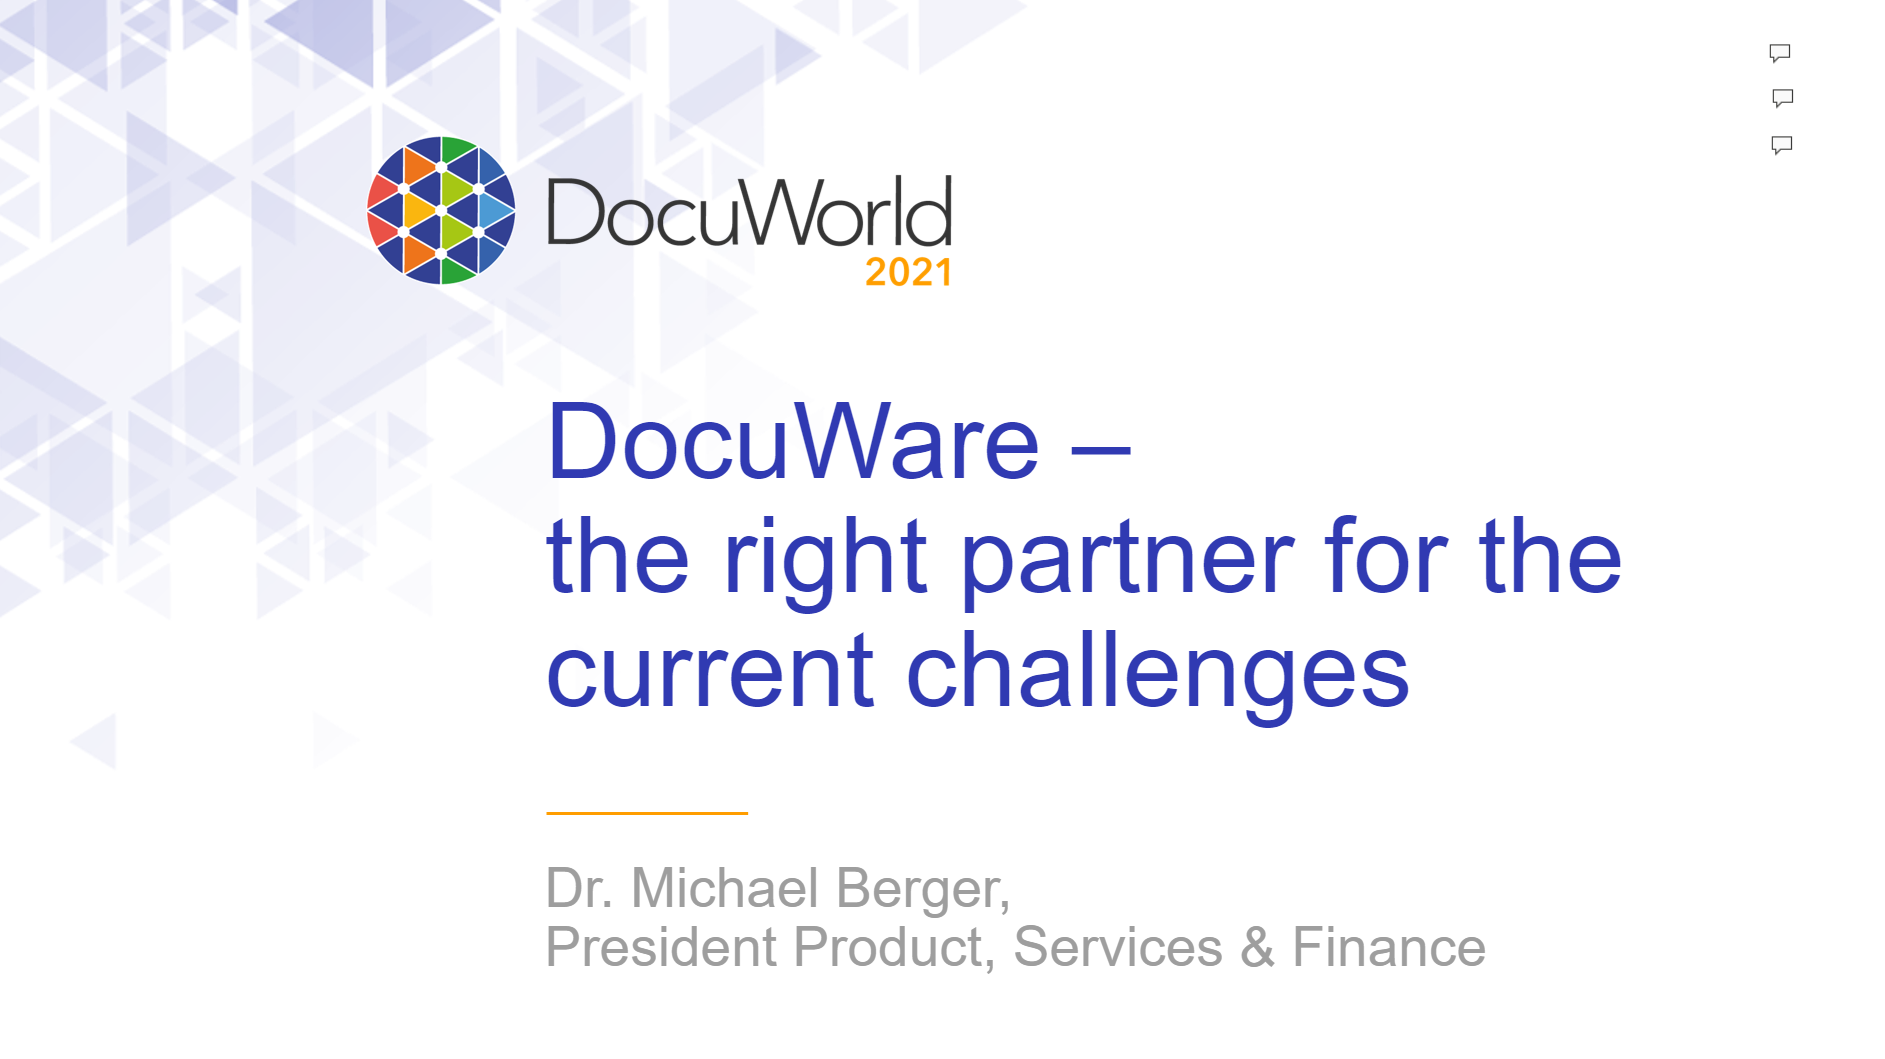 DocuWorld Partner Conference 2021: DocuWare The Right Partner